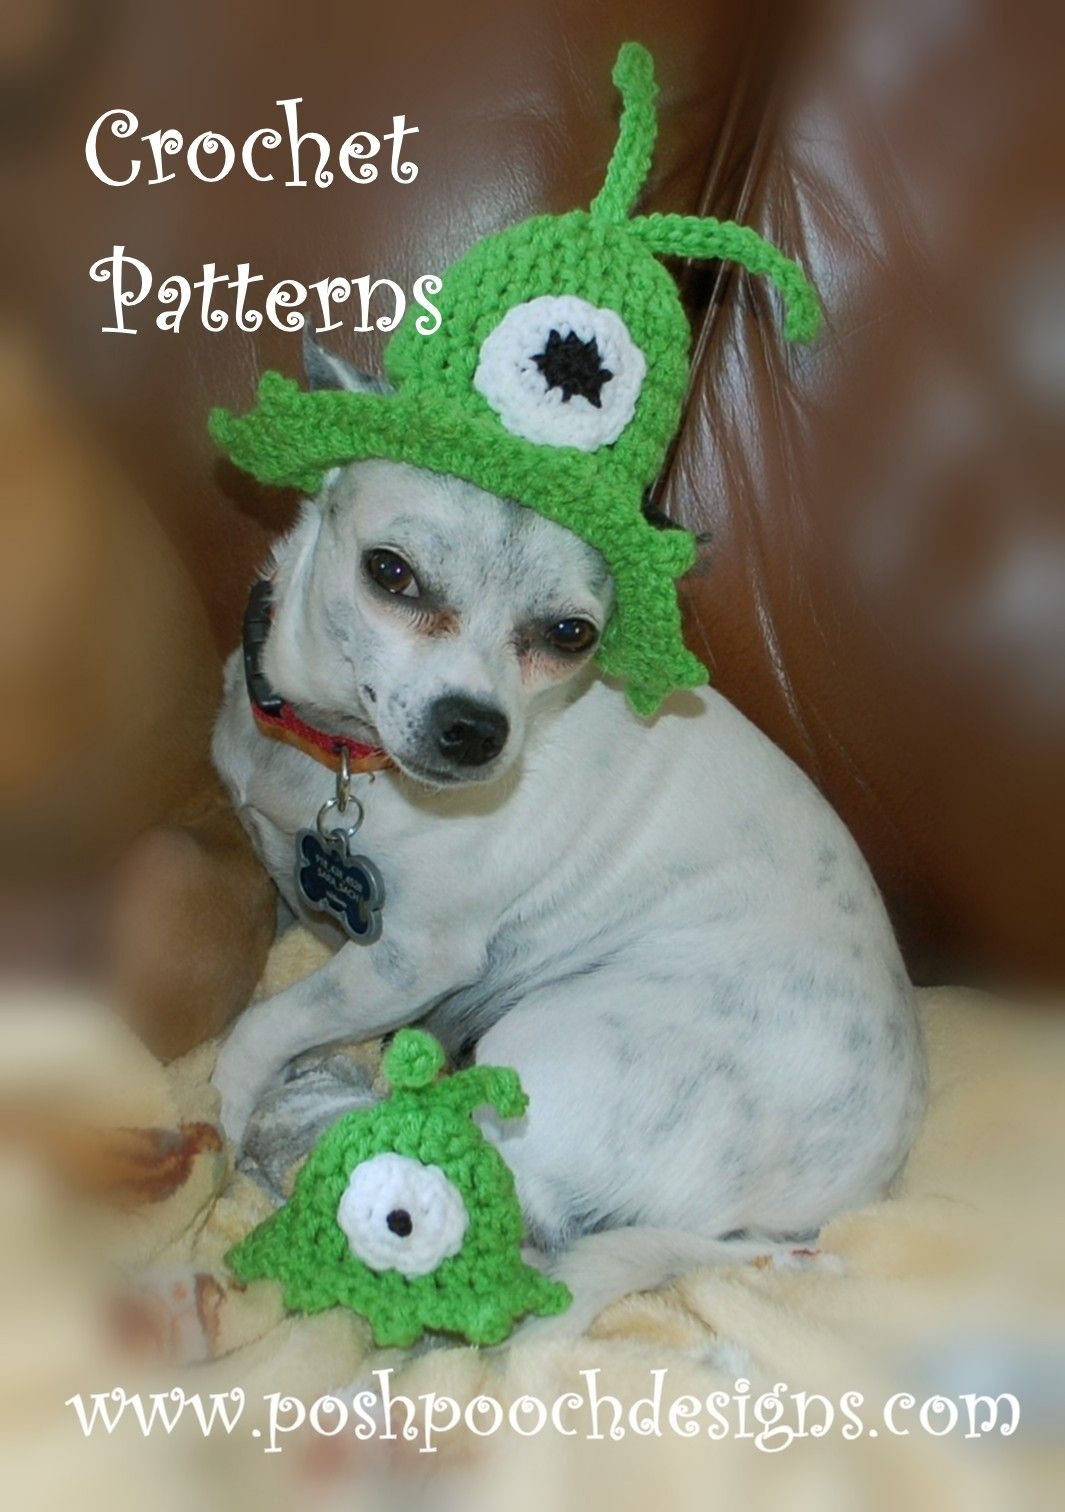 Posh Pooch Designs Dog Clothes: Brain Slugs! | Pet crafts | Pinterest